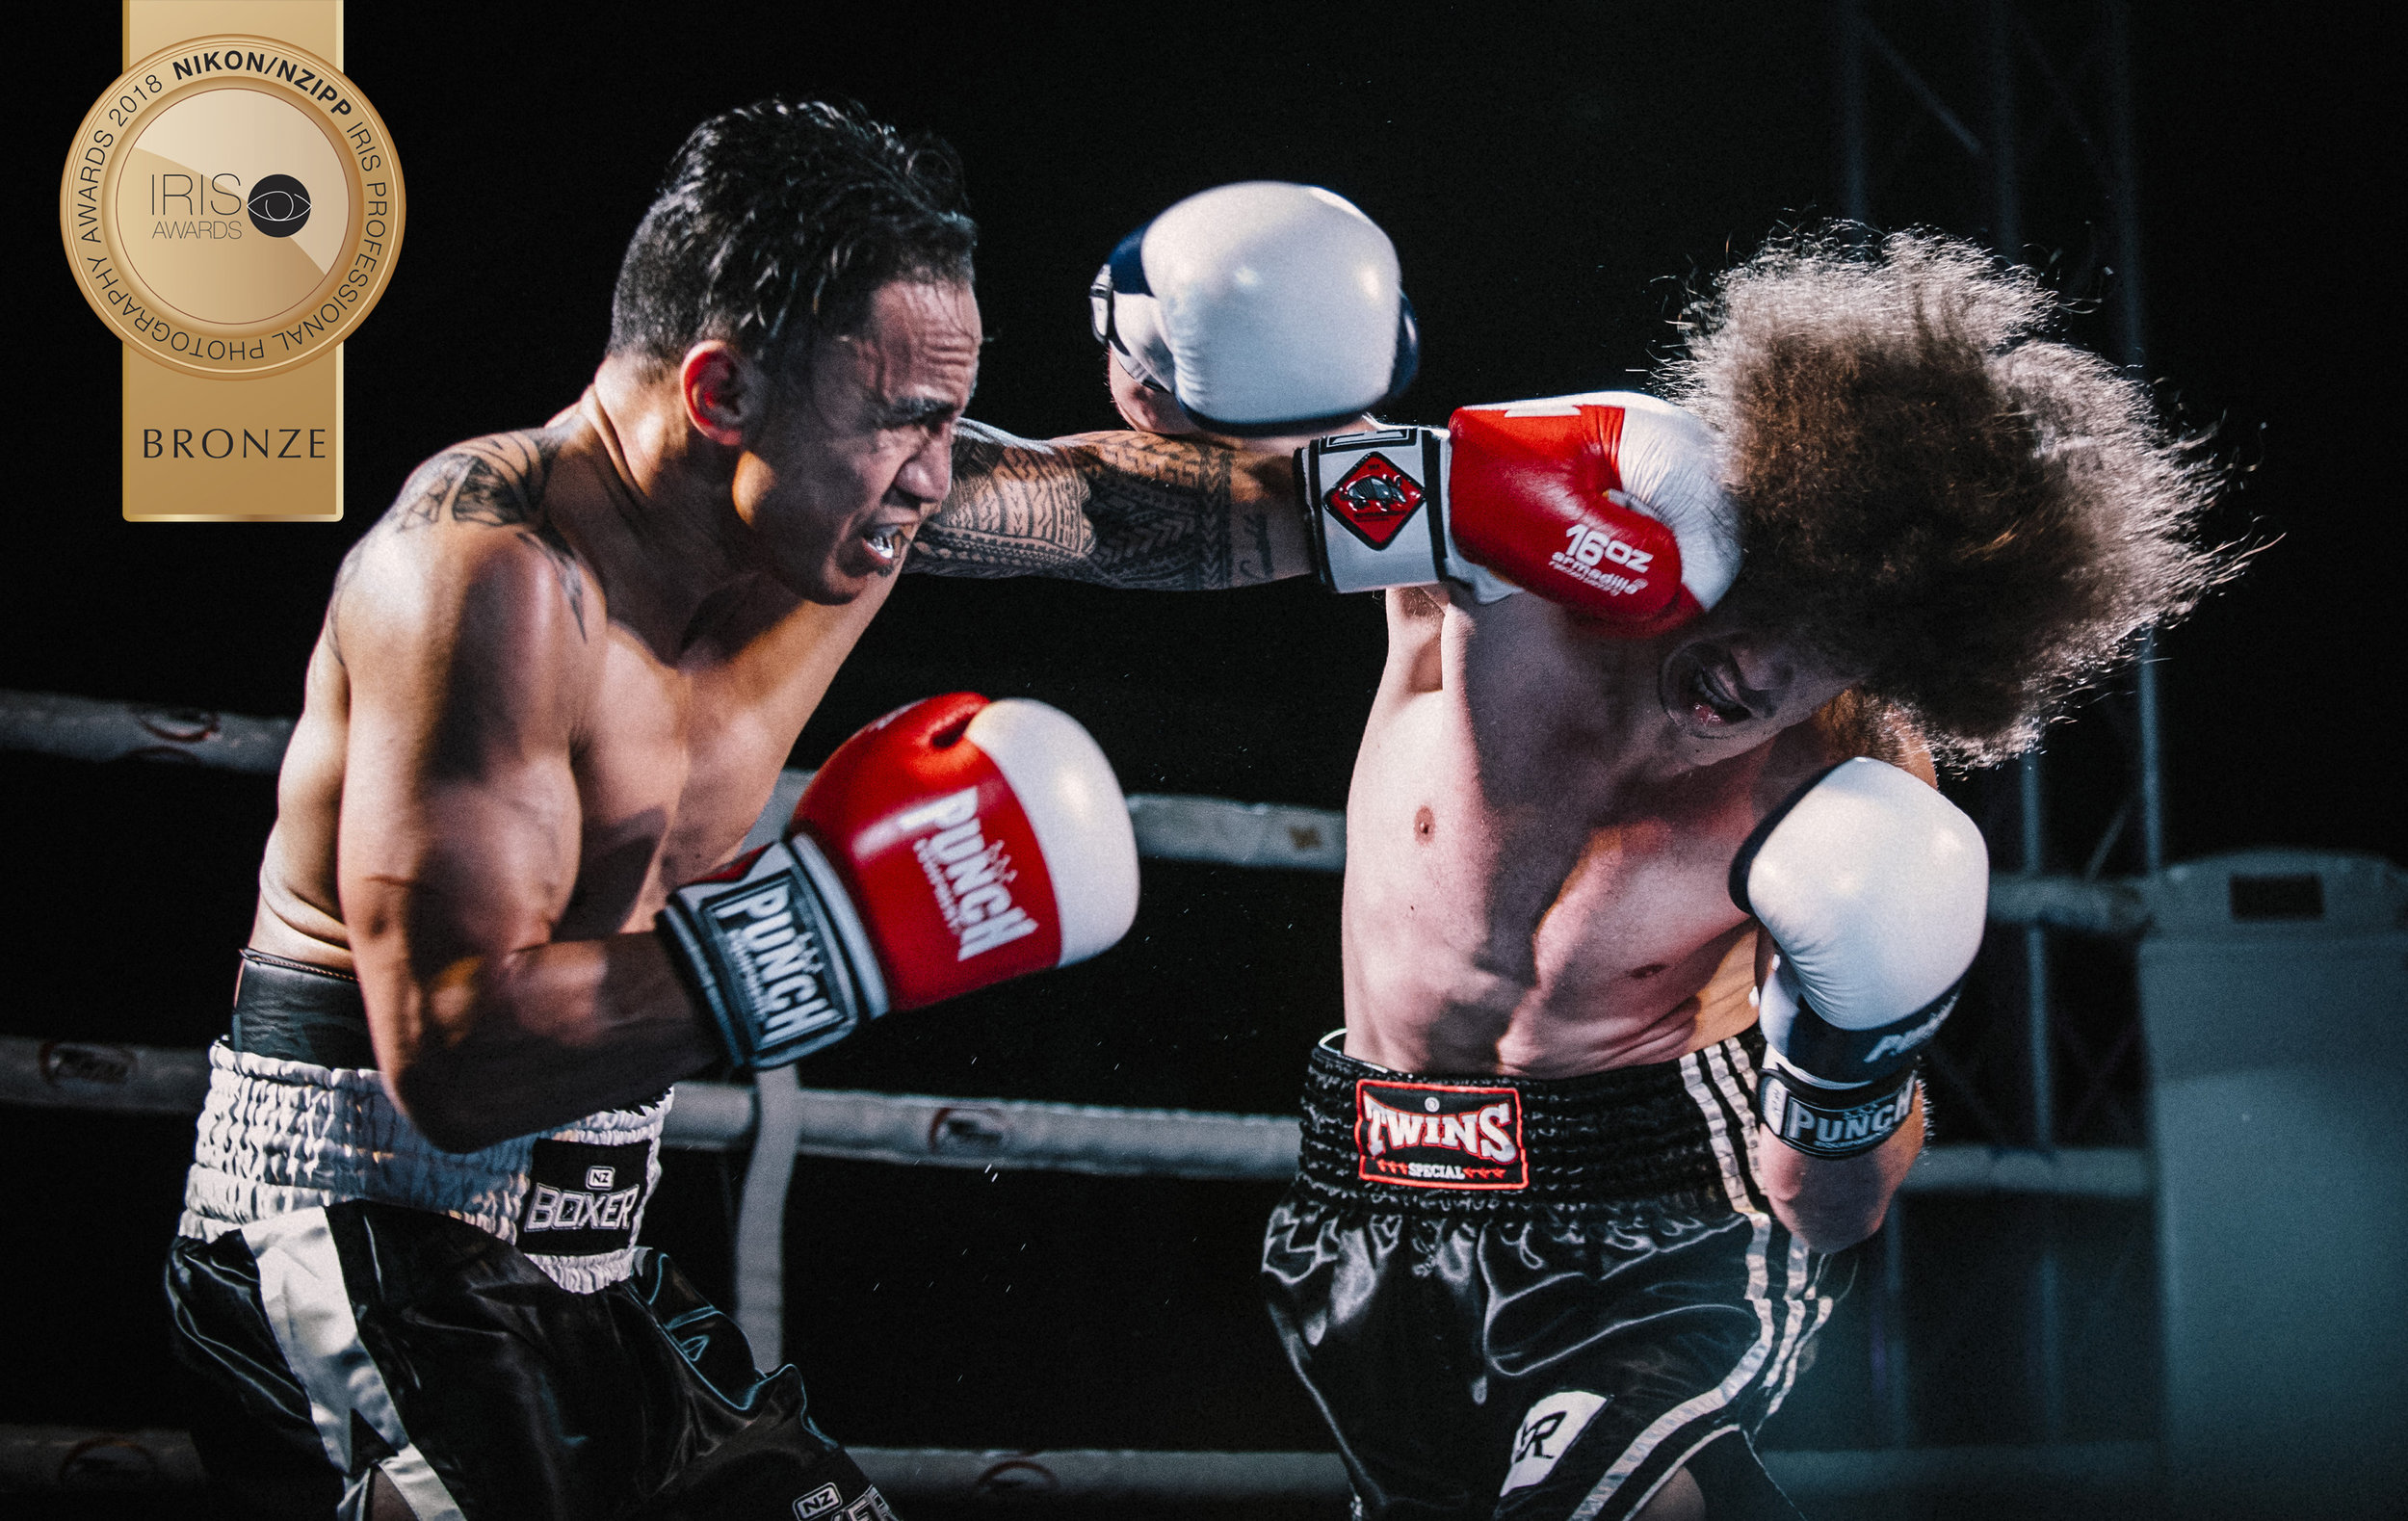 Auckland boxing photographer